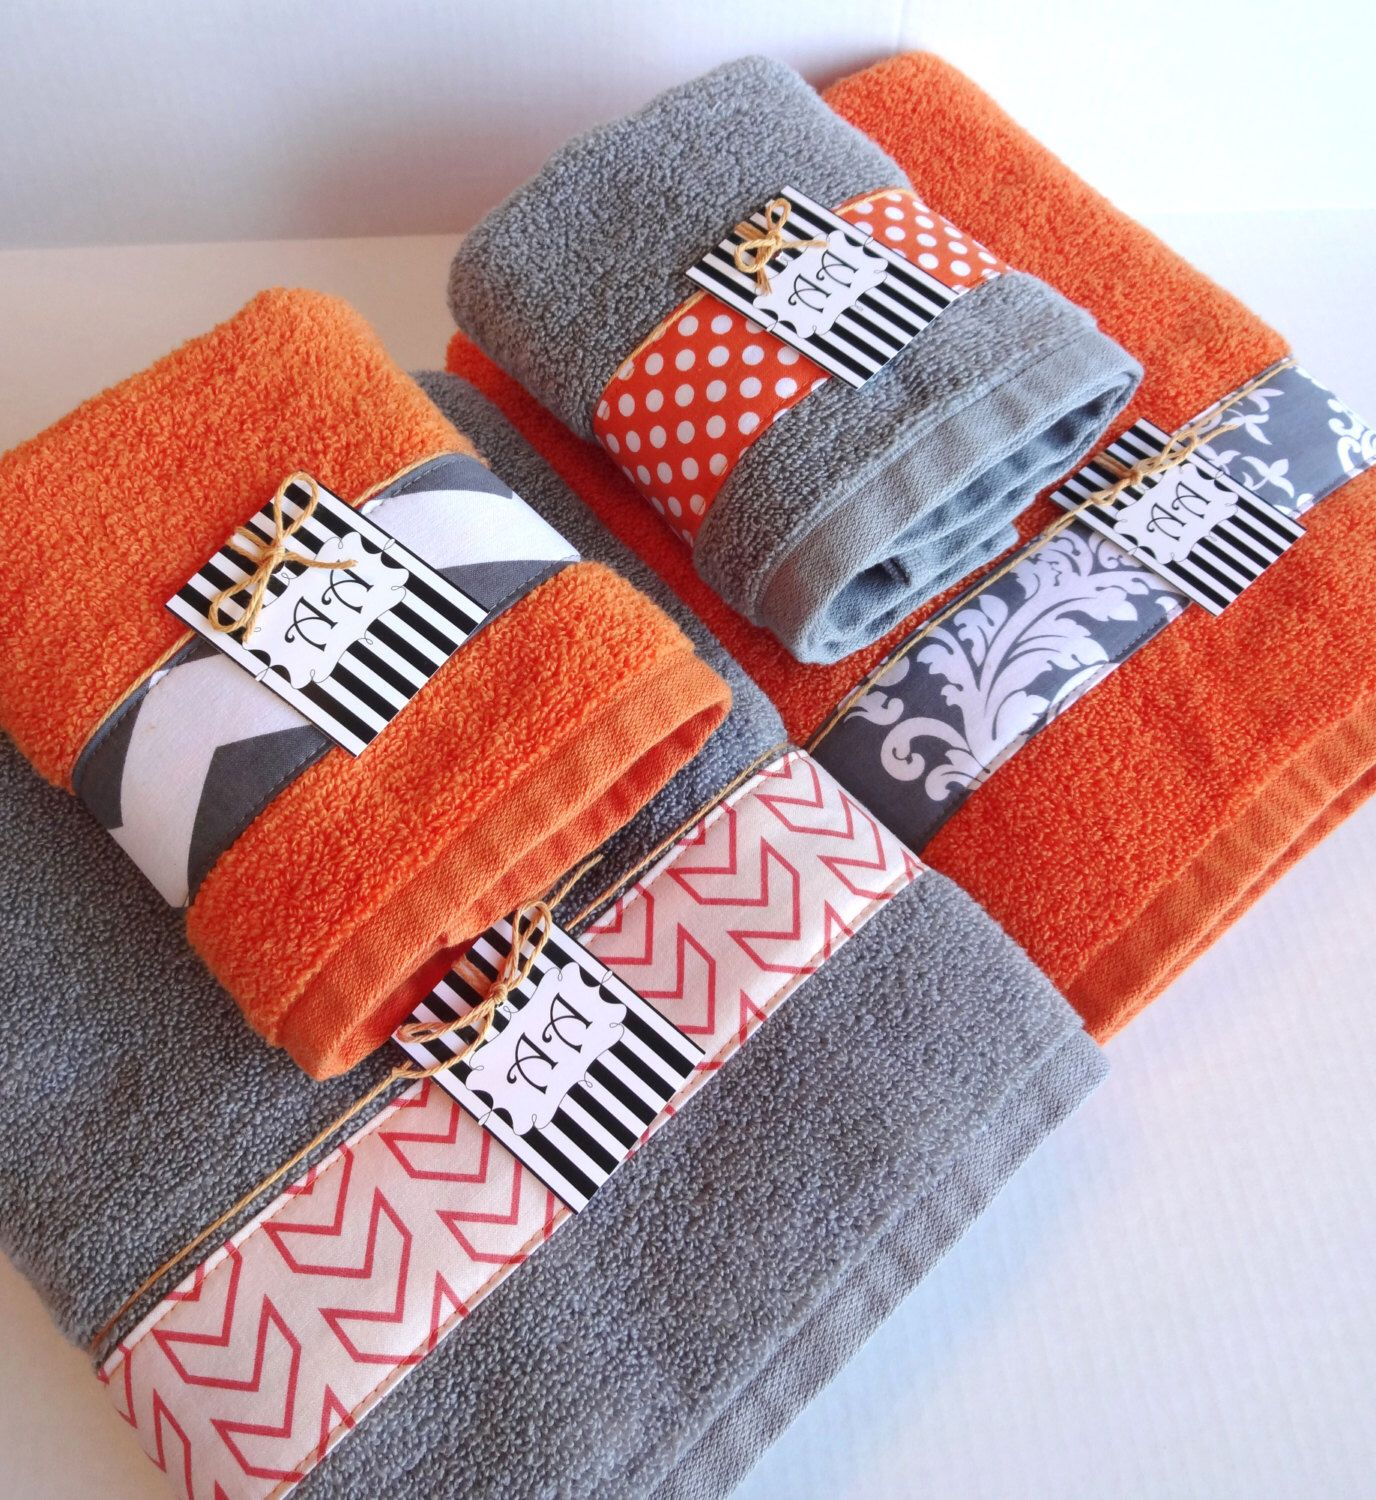 Set Of 4 Bath Towels Gray And Orange Grey And Orange By Augustave Hotel Collection Towels Gray Towels Orange Bathroom Decor